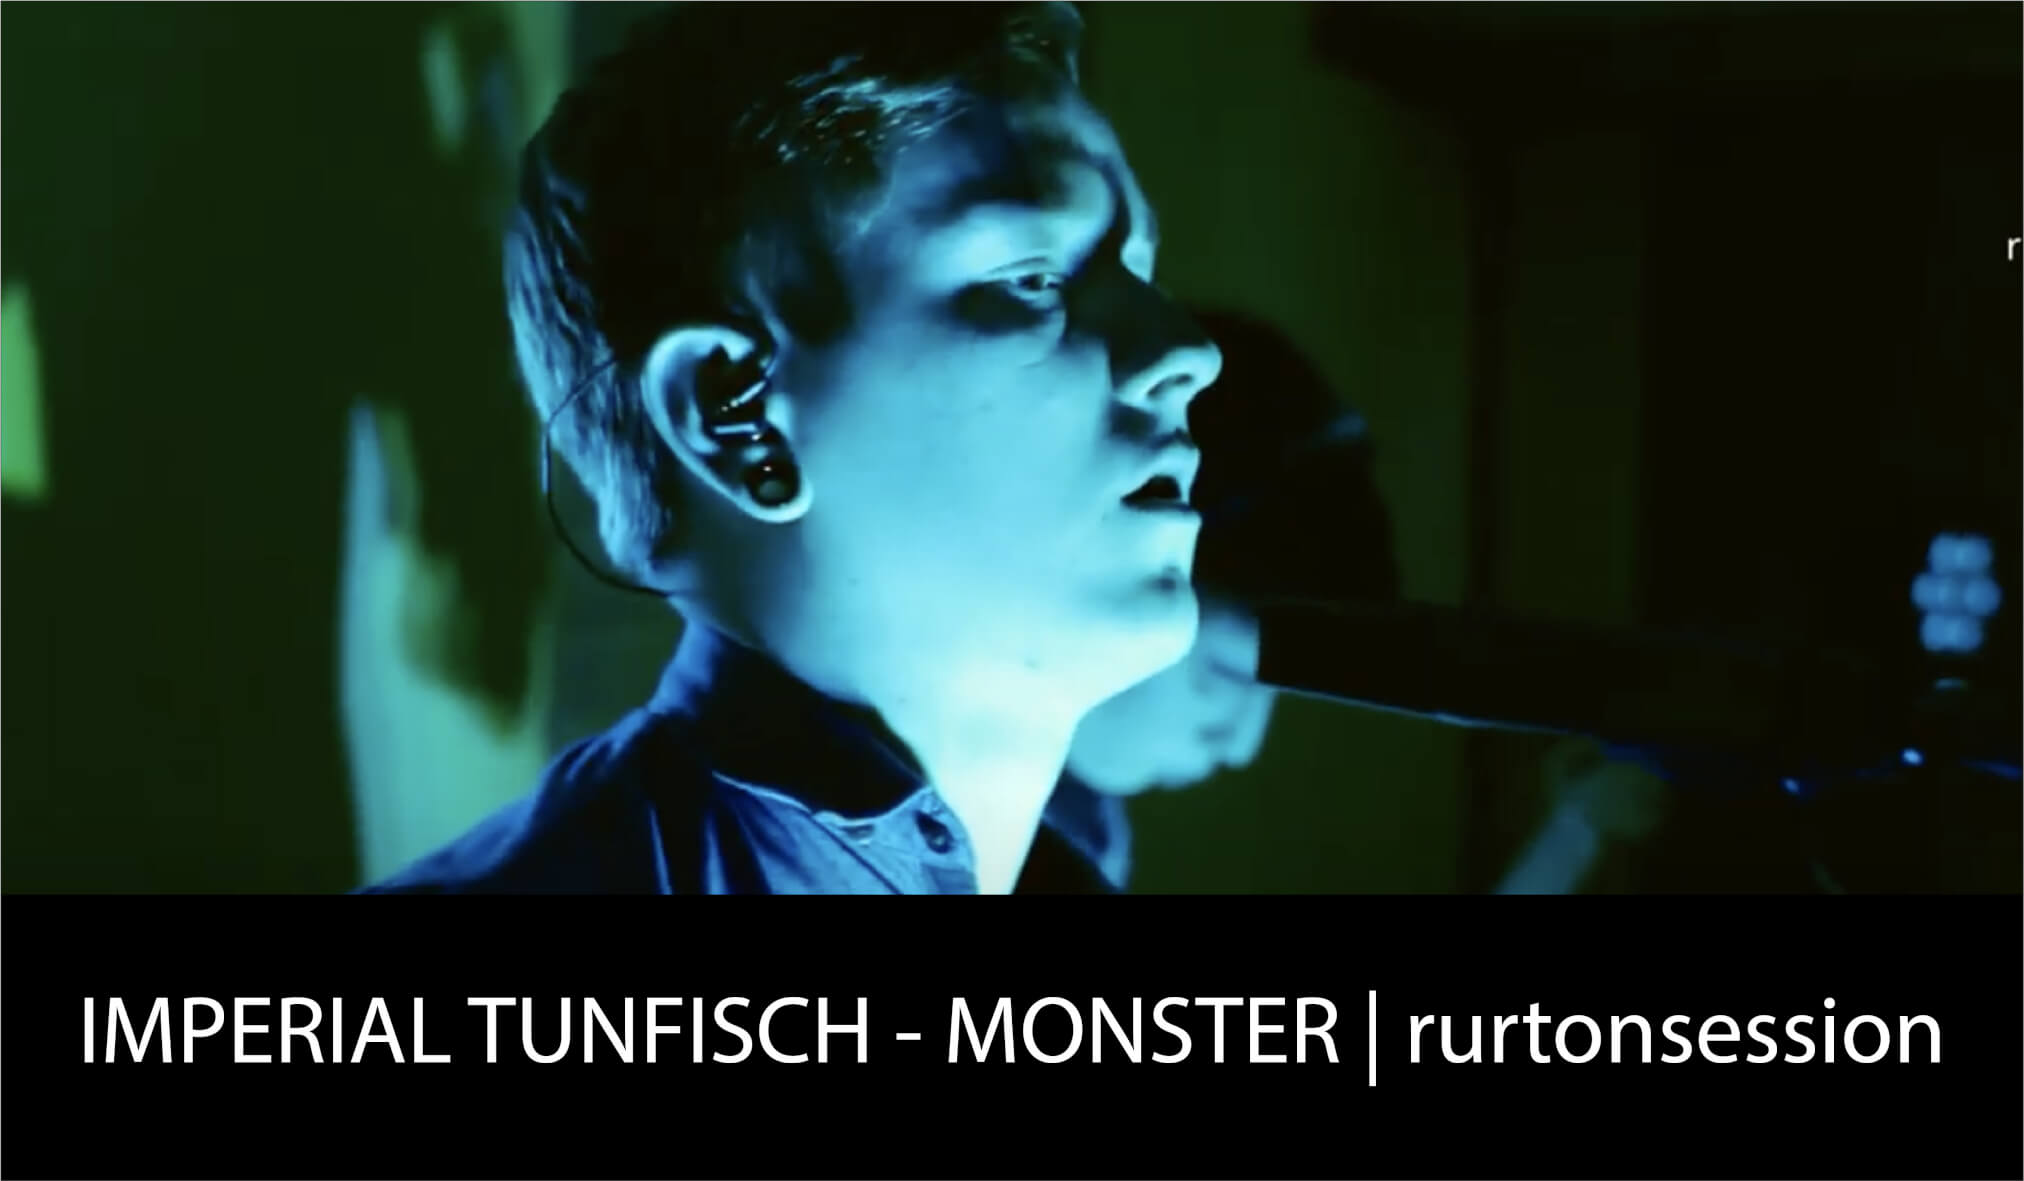 IMPERIAL TUNFISCH - MONSTER rurtonsession